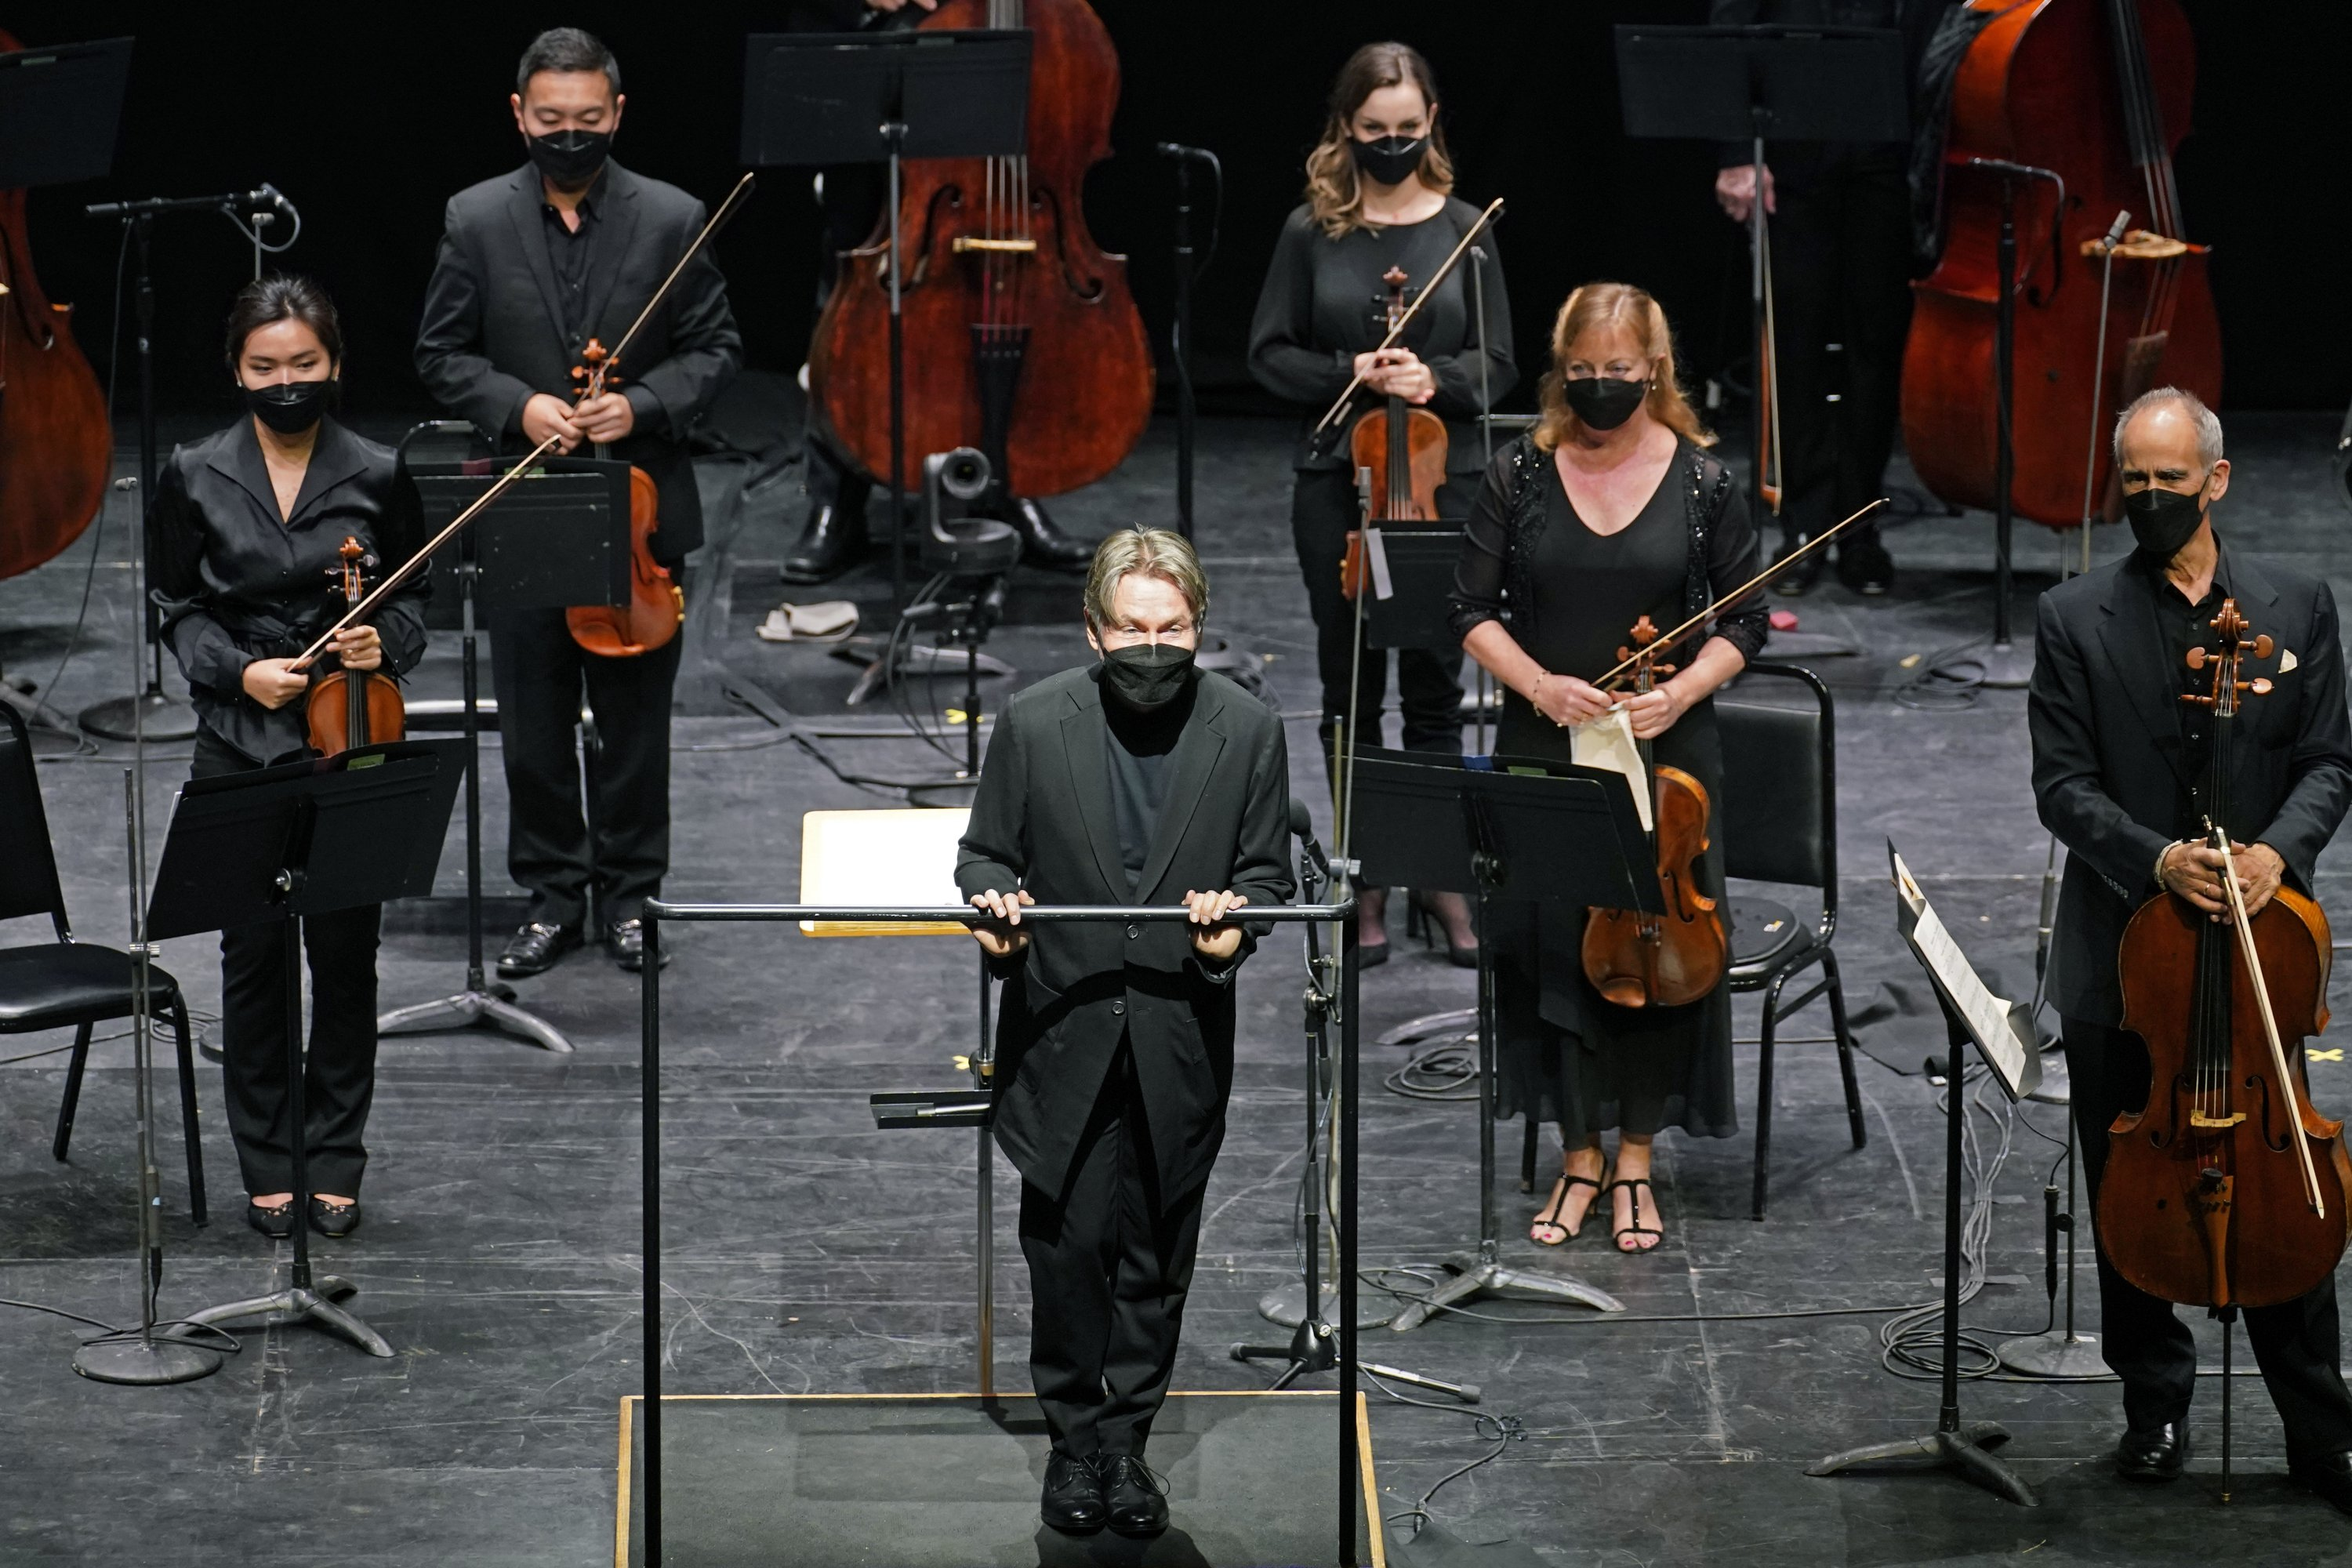 Guest conductor Essa Pekka Salonen (C) greets a live audience as New York Philharmonic musicians stand behind him before they performed together for the first time since March 10, 2020, at The Shed in Hudson Yards, New York, U.S., Wednesday, April 14, 2021. (AP Photo)